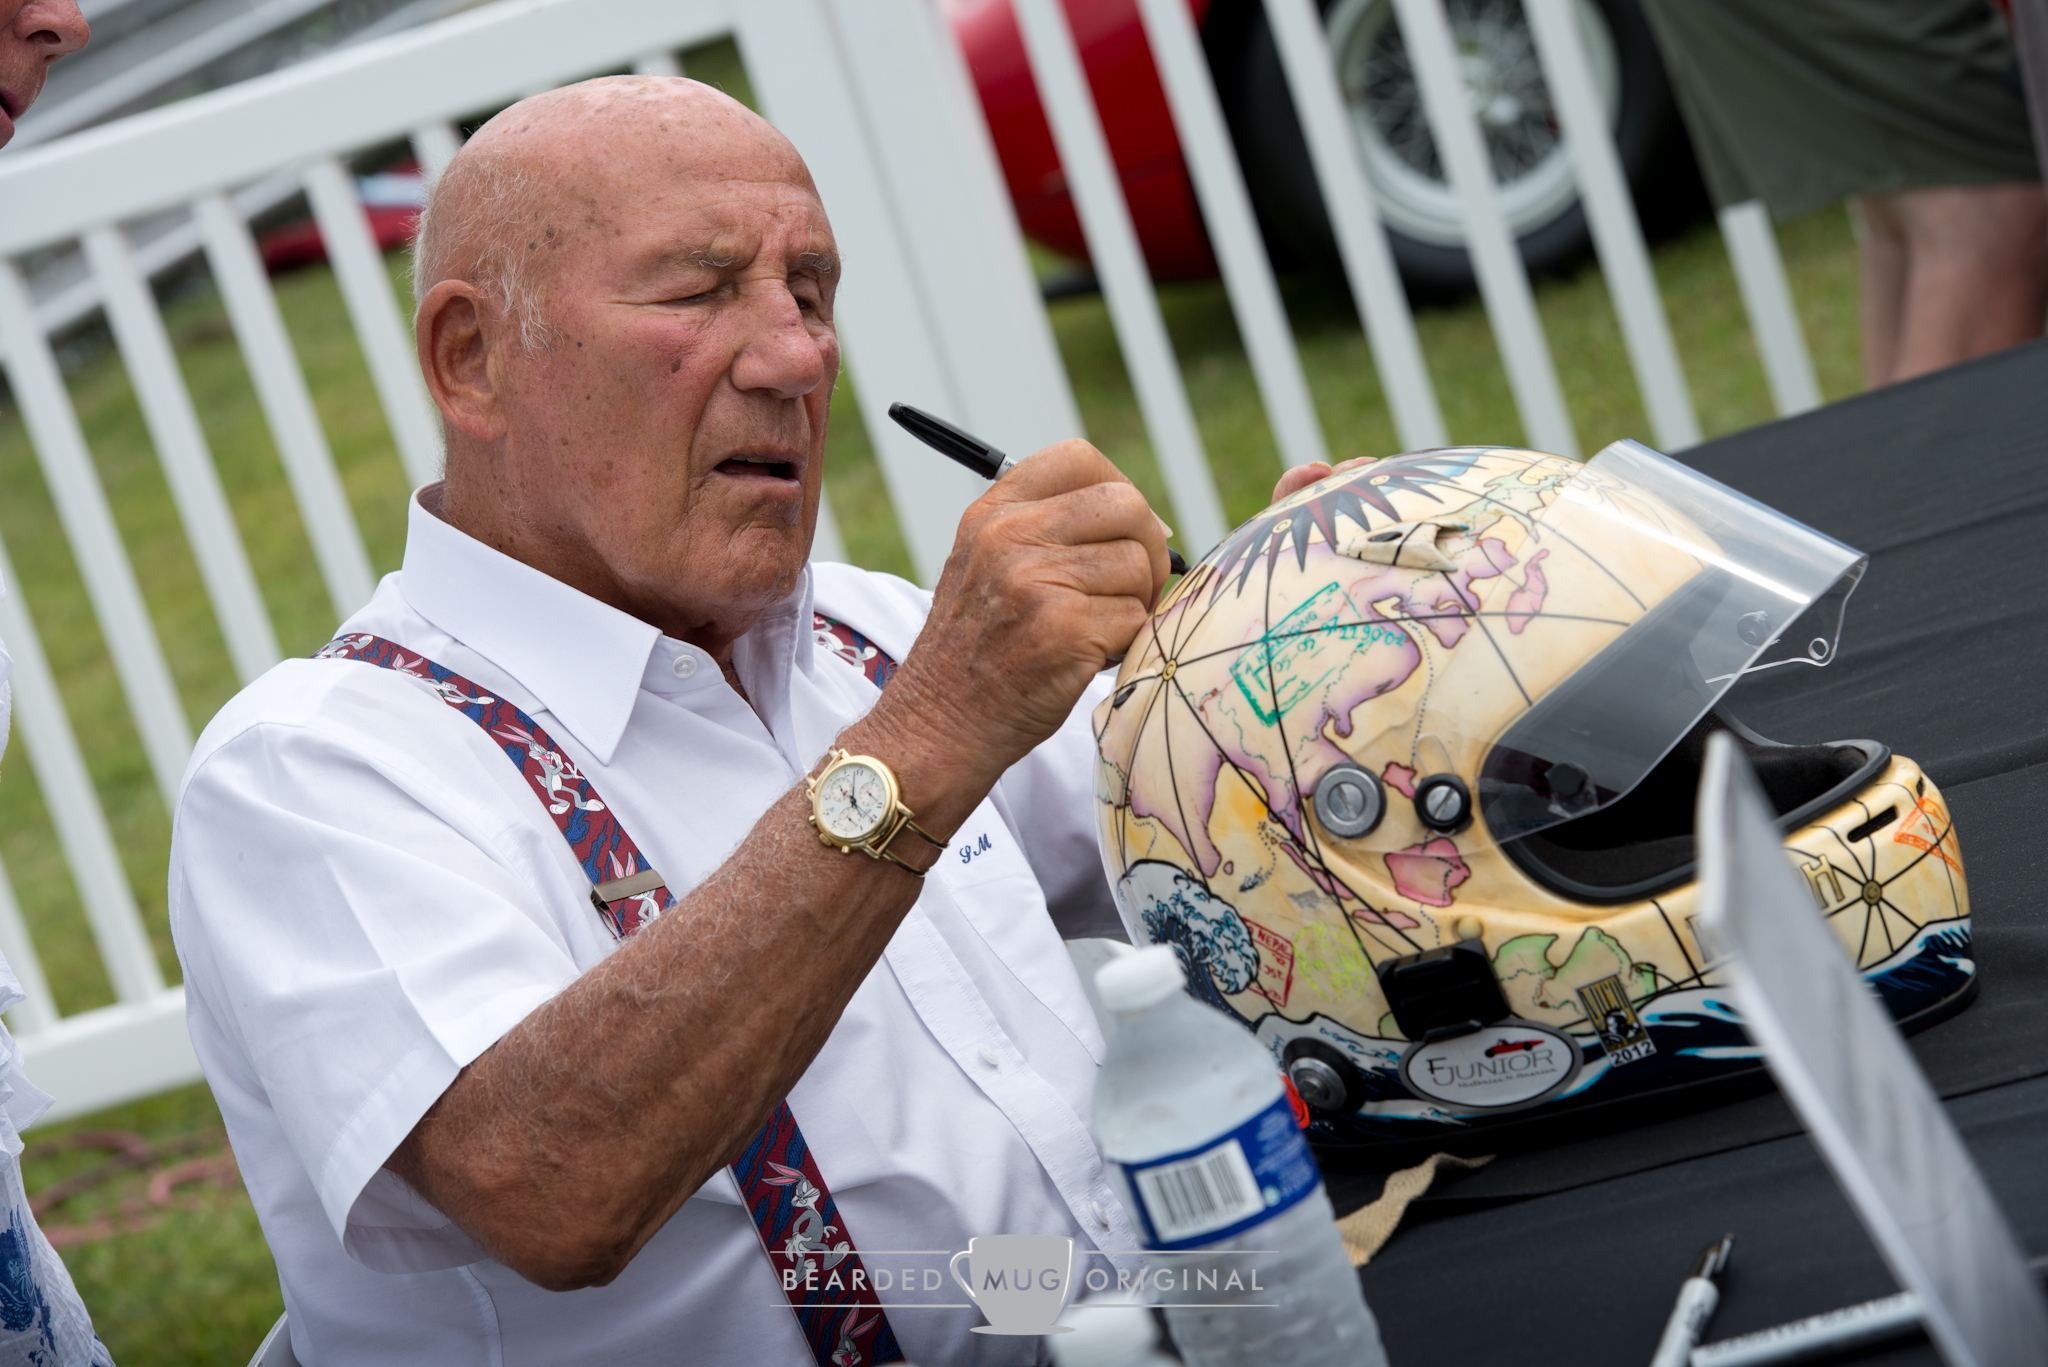 Sir Stirling Moss, the Honored Guest, was presented with a variety of memorabilia for him to apply his signature to.